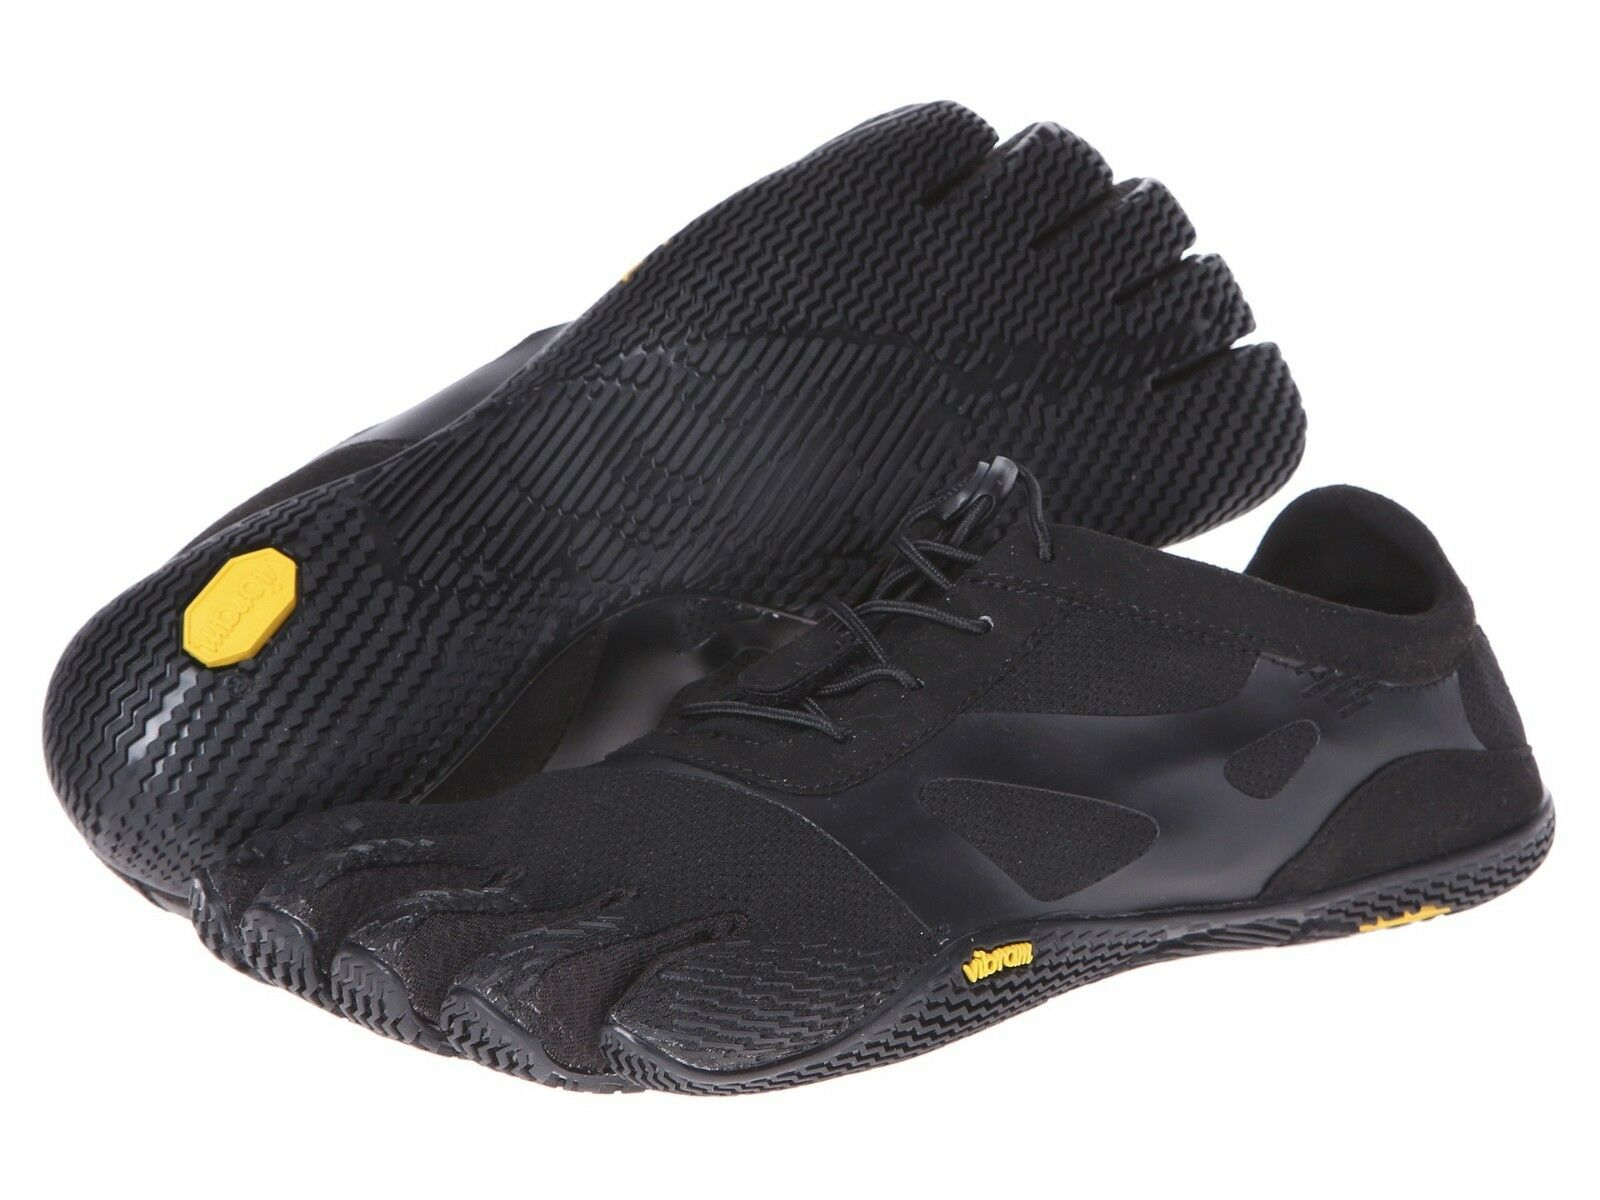 Vibram FiveFingers KSO EVO LS  Ladies Barefoot Minimalist Training shoes RRP  free and fast delivery available